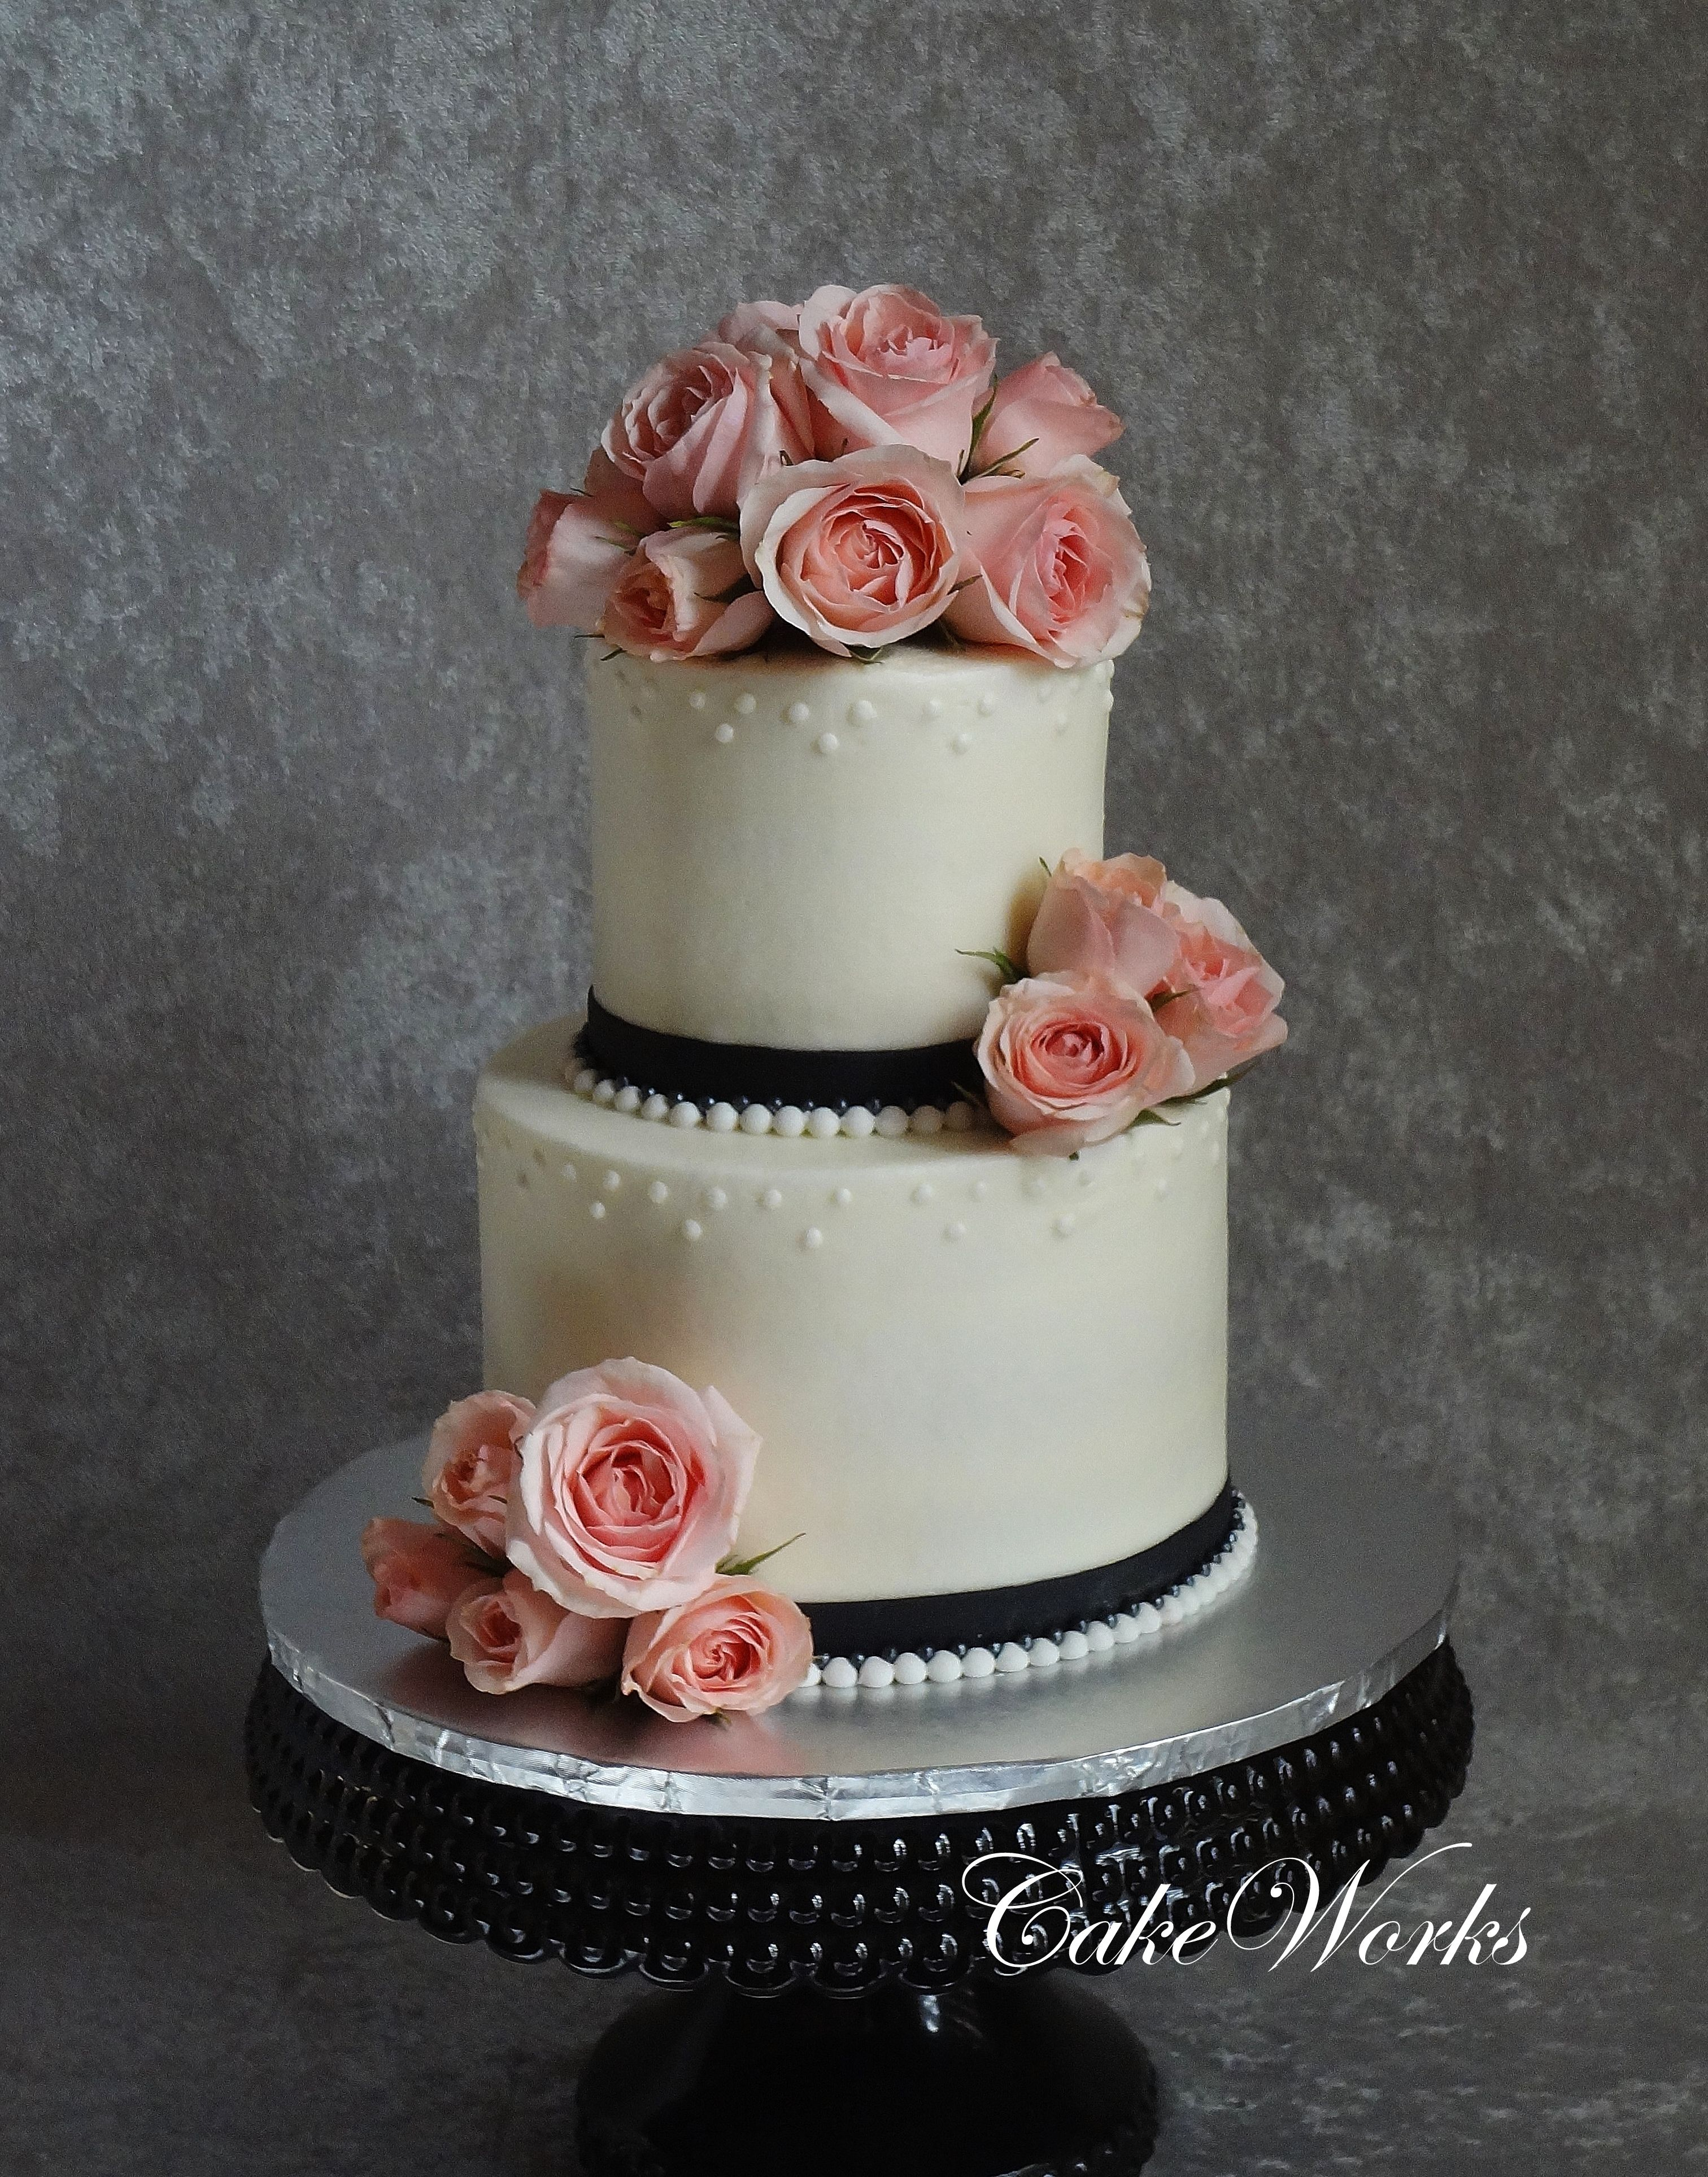 Sweetheart roses and pearls - White almond cake with raspberry cream filling iced in vanilla buttercream with black fondant ribbon and fondant pearl border.   Fresh sweetheart roses.